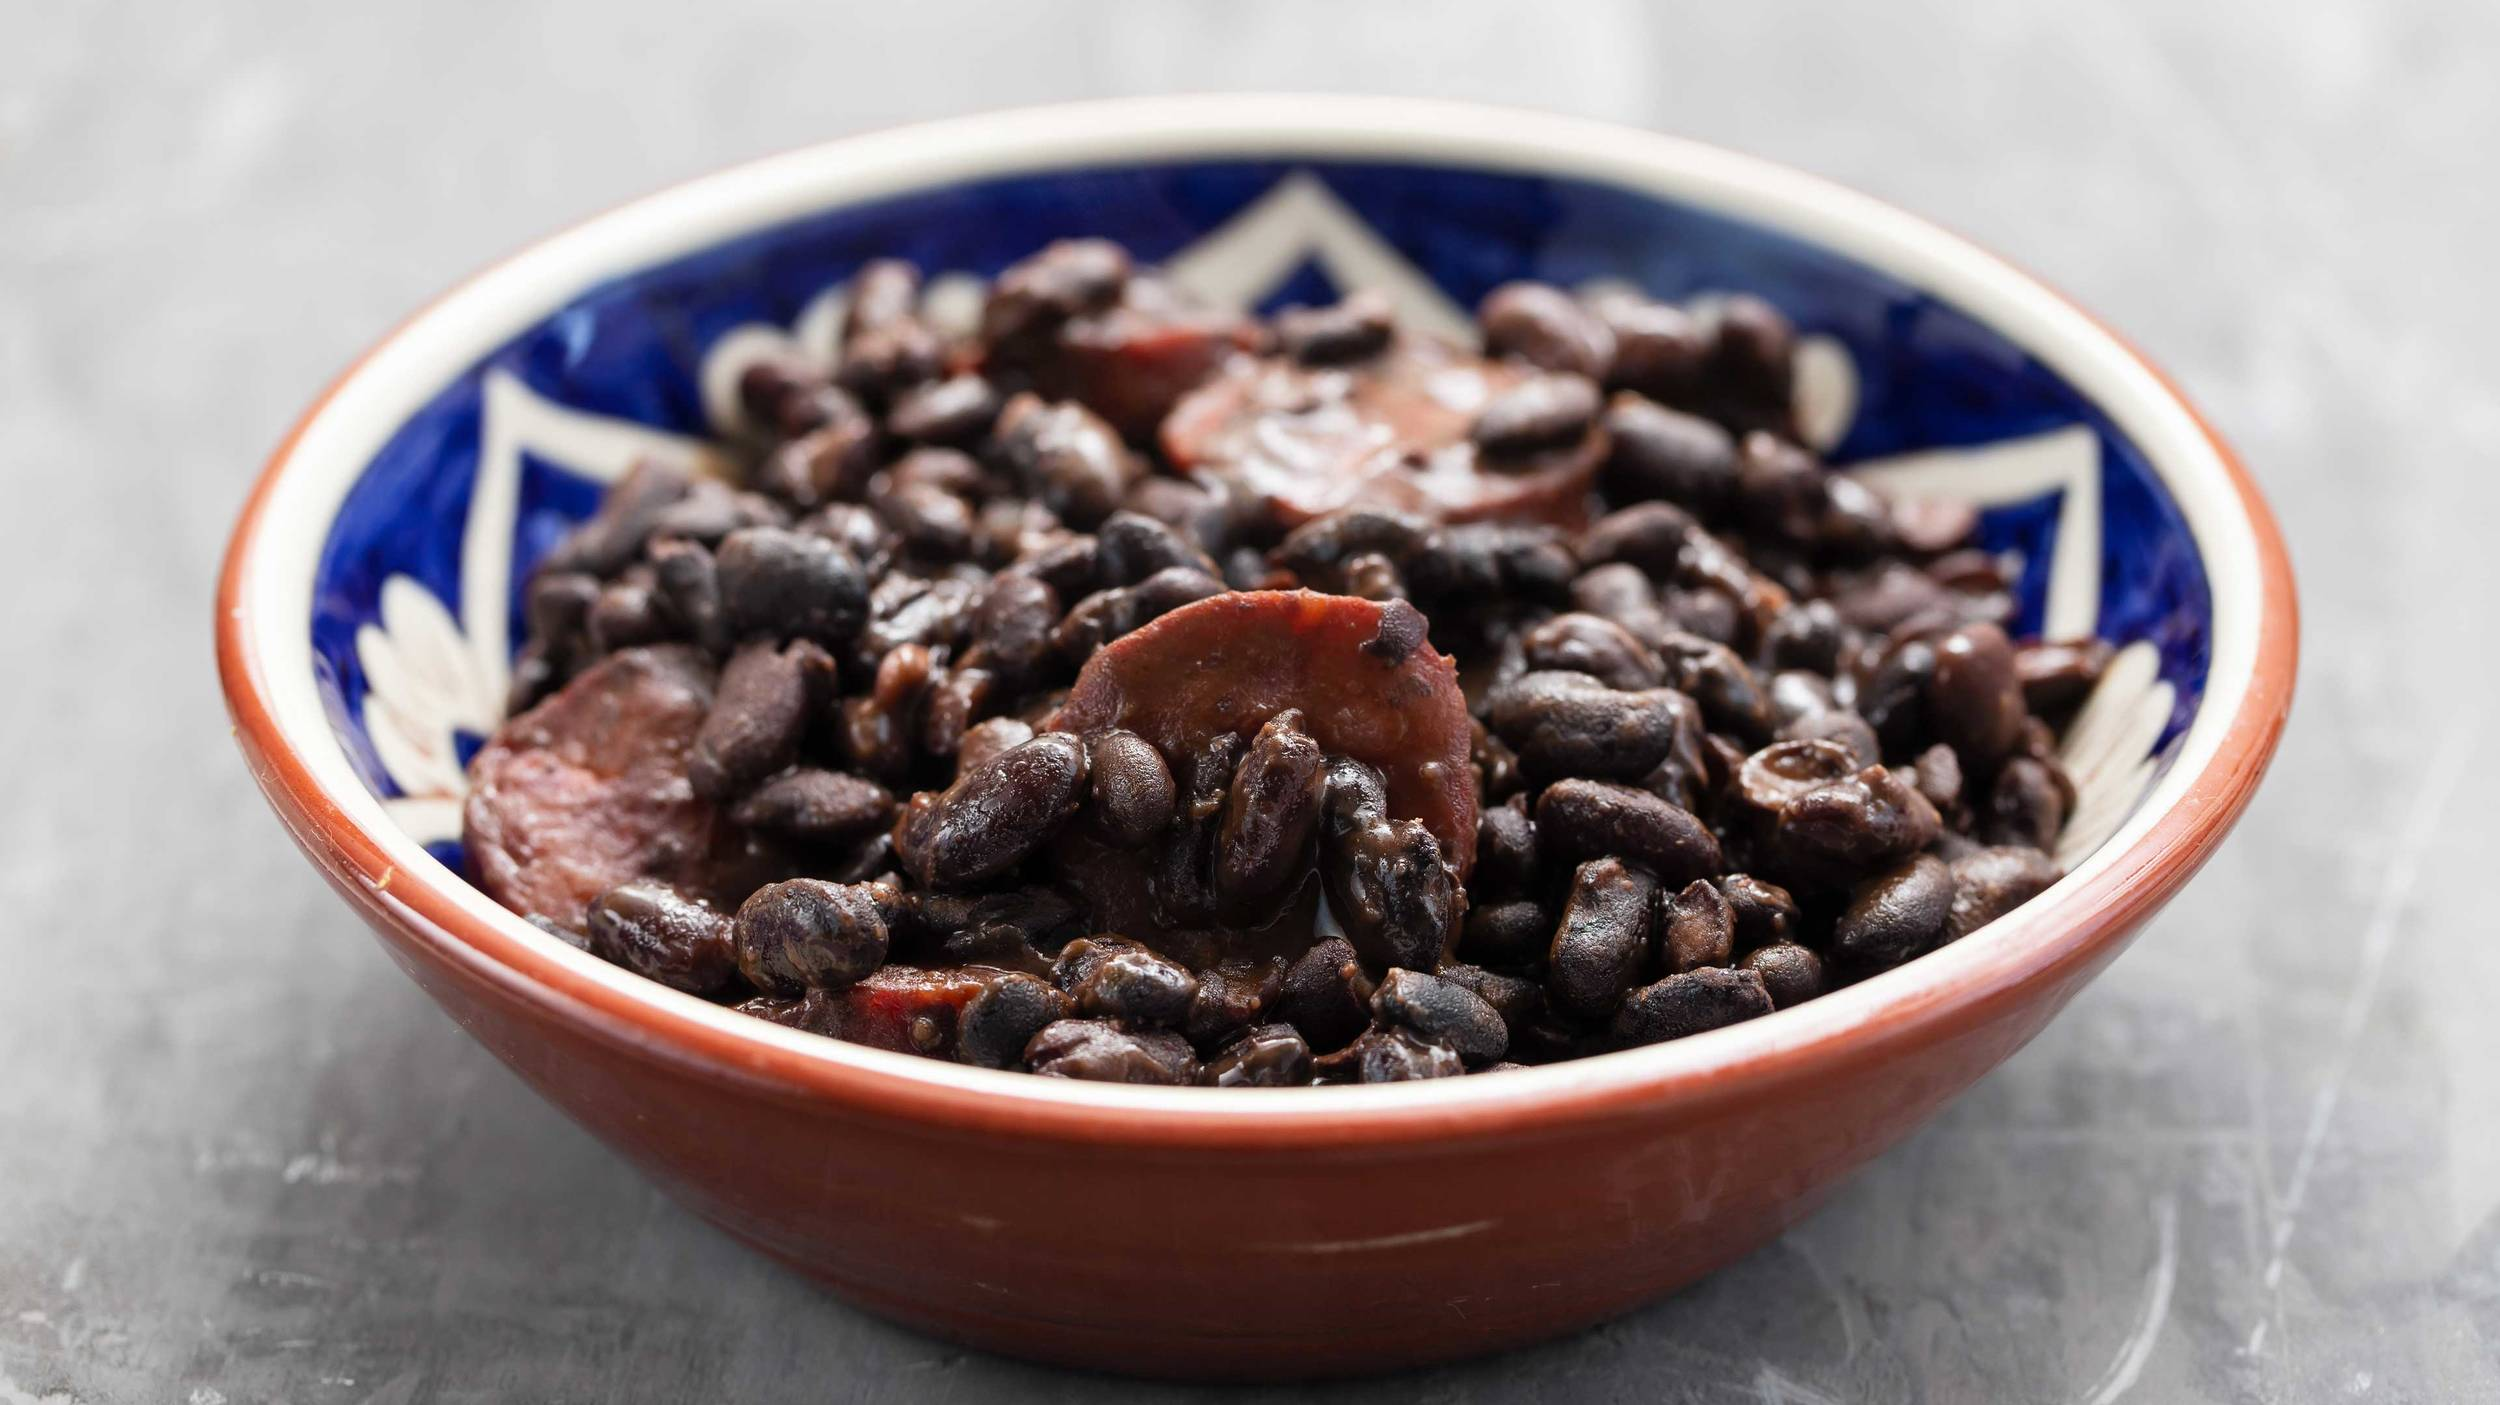 Black beans are great in stews, soups, dips and sales and can be used in burritos or tacos.